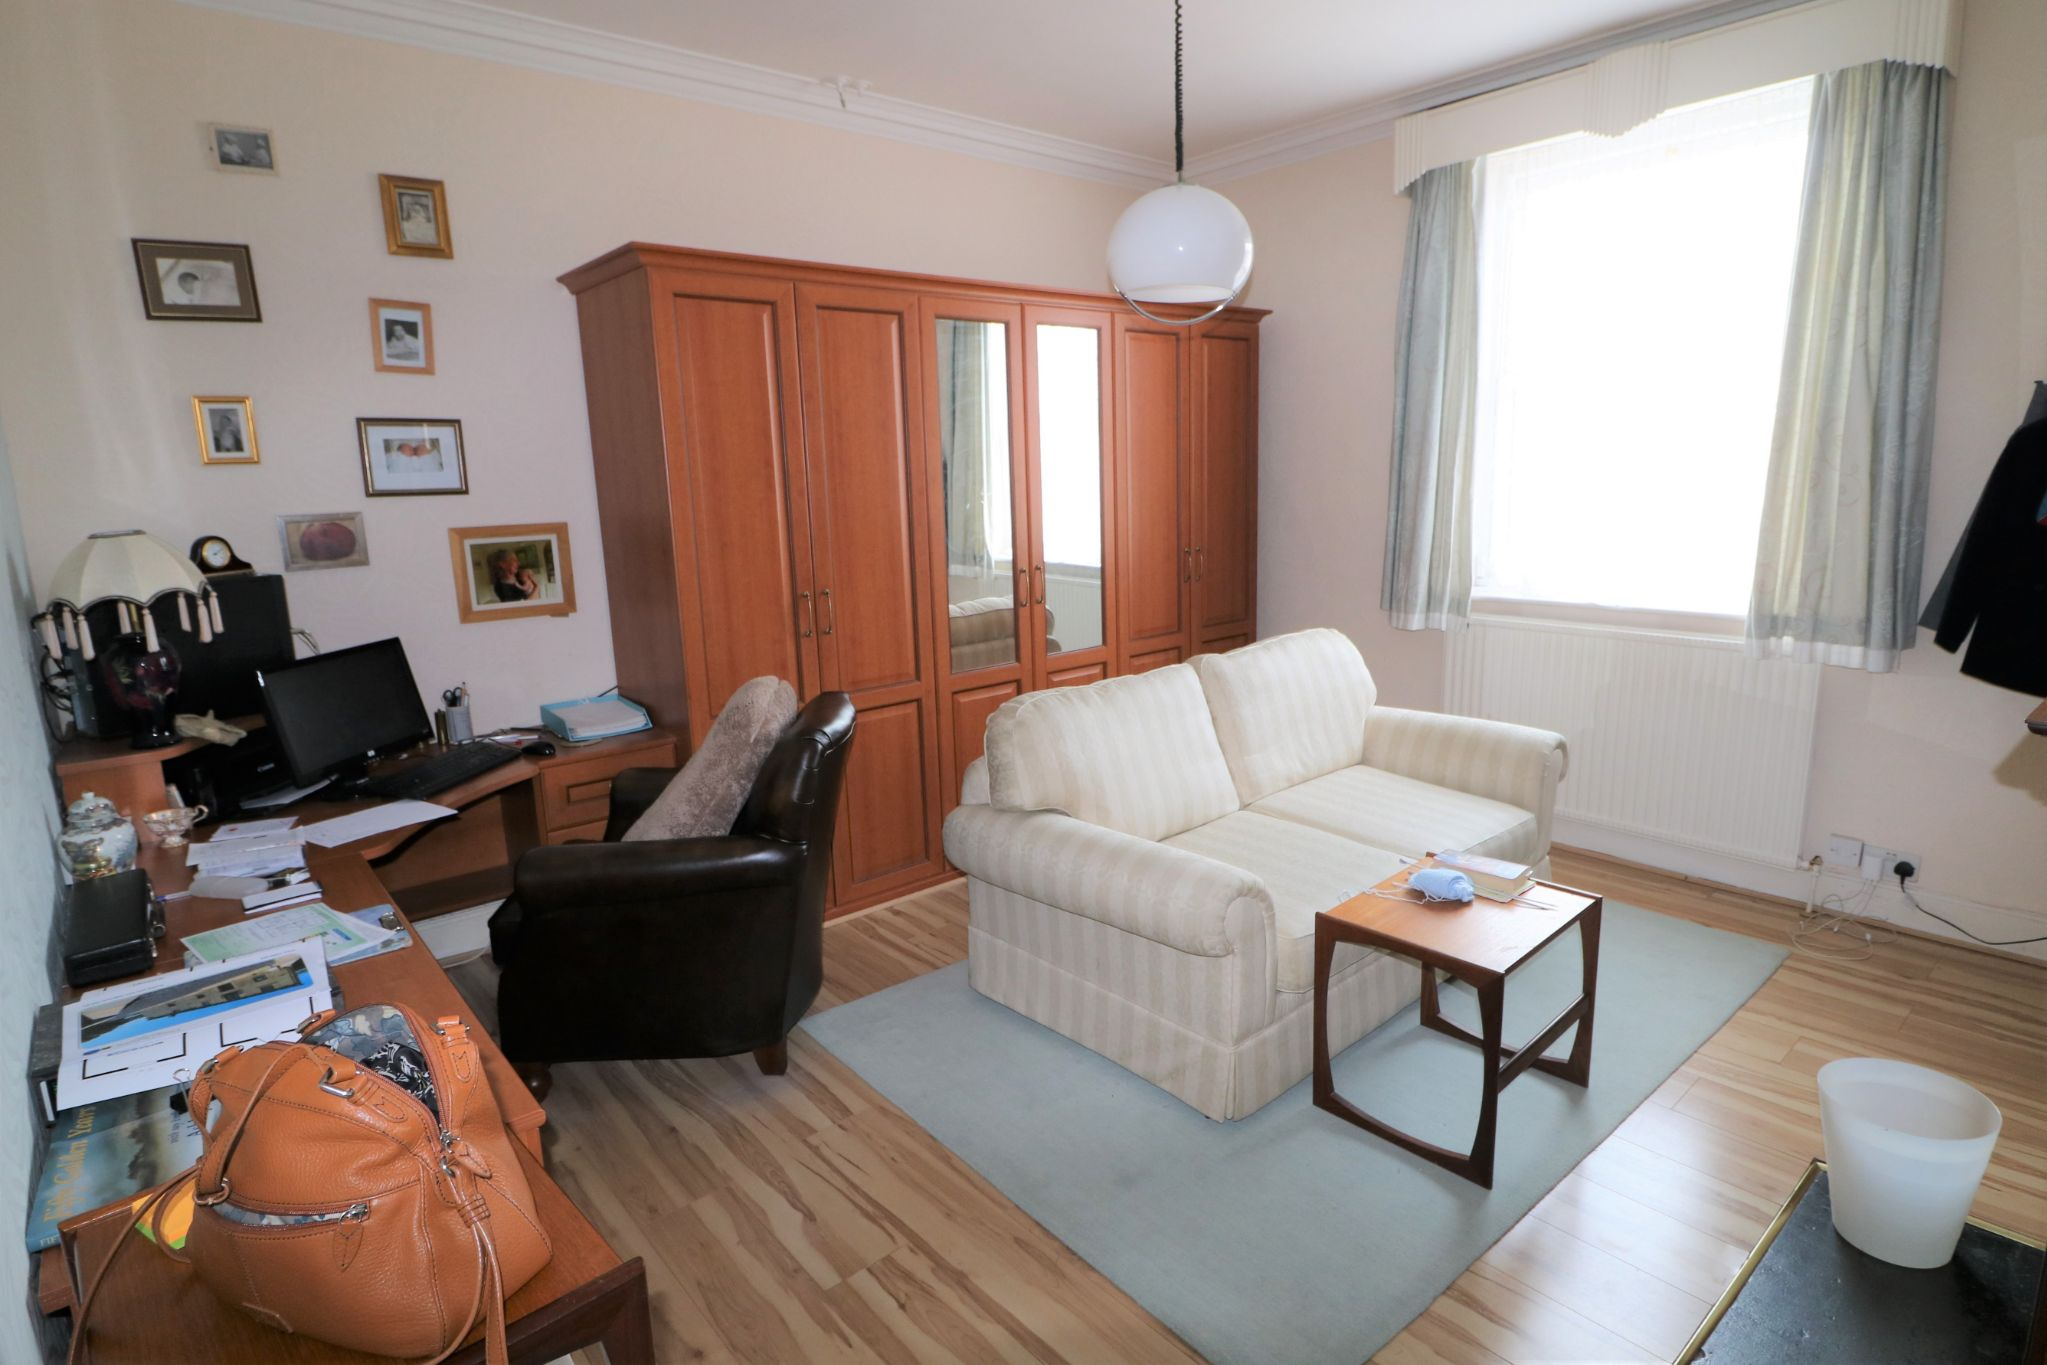 6 Bedroom Semi-detached House For Sale - Photograph 19